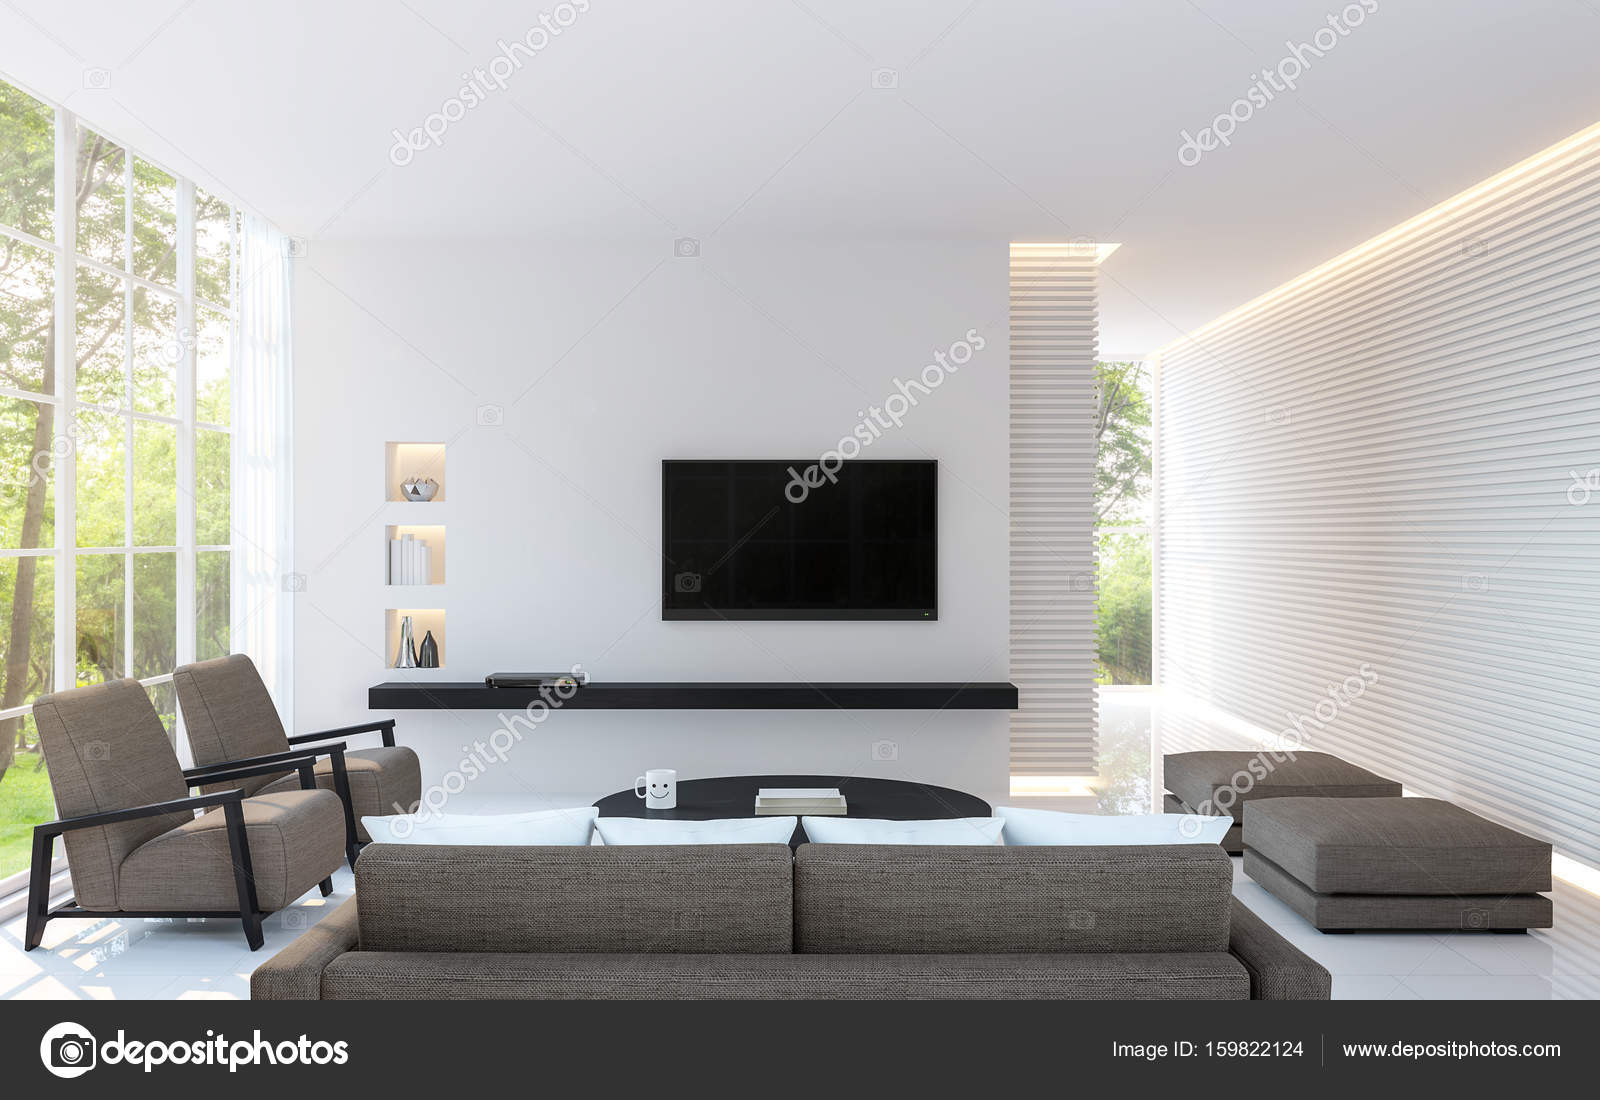 Modern white living room decorate wall with line pattern and hidden ...